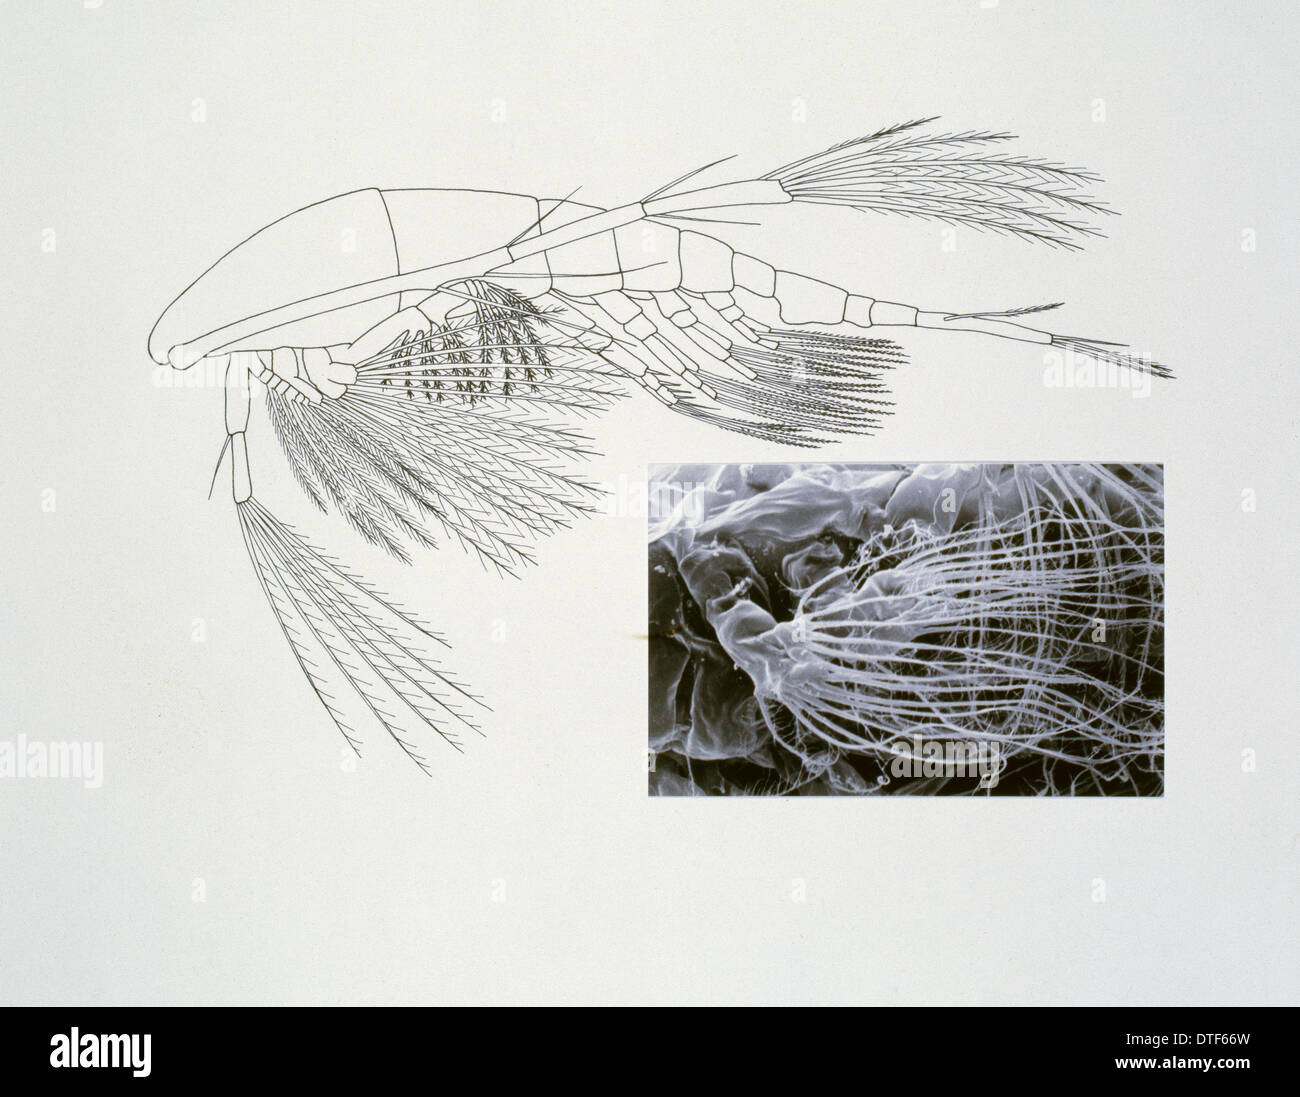 Line drawing of a shrimp-like crustacea - Stock Image